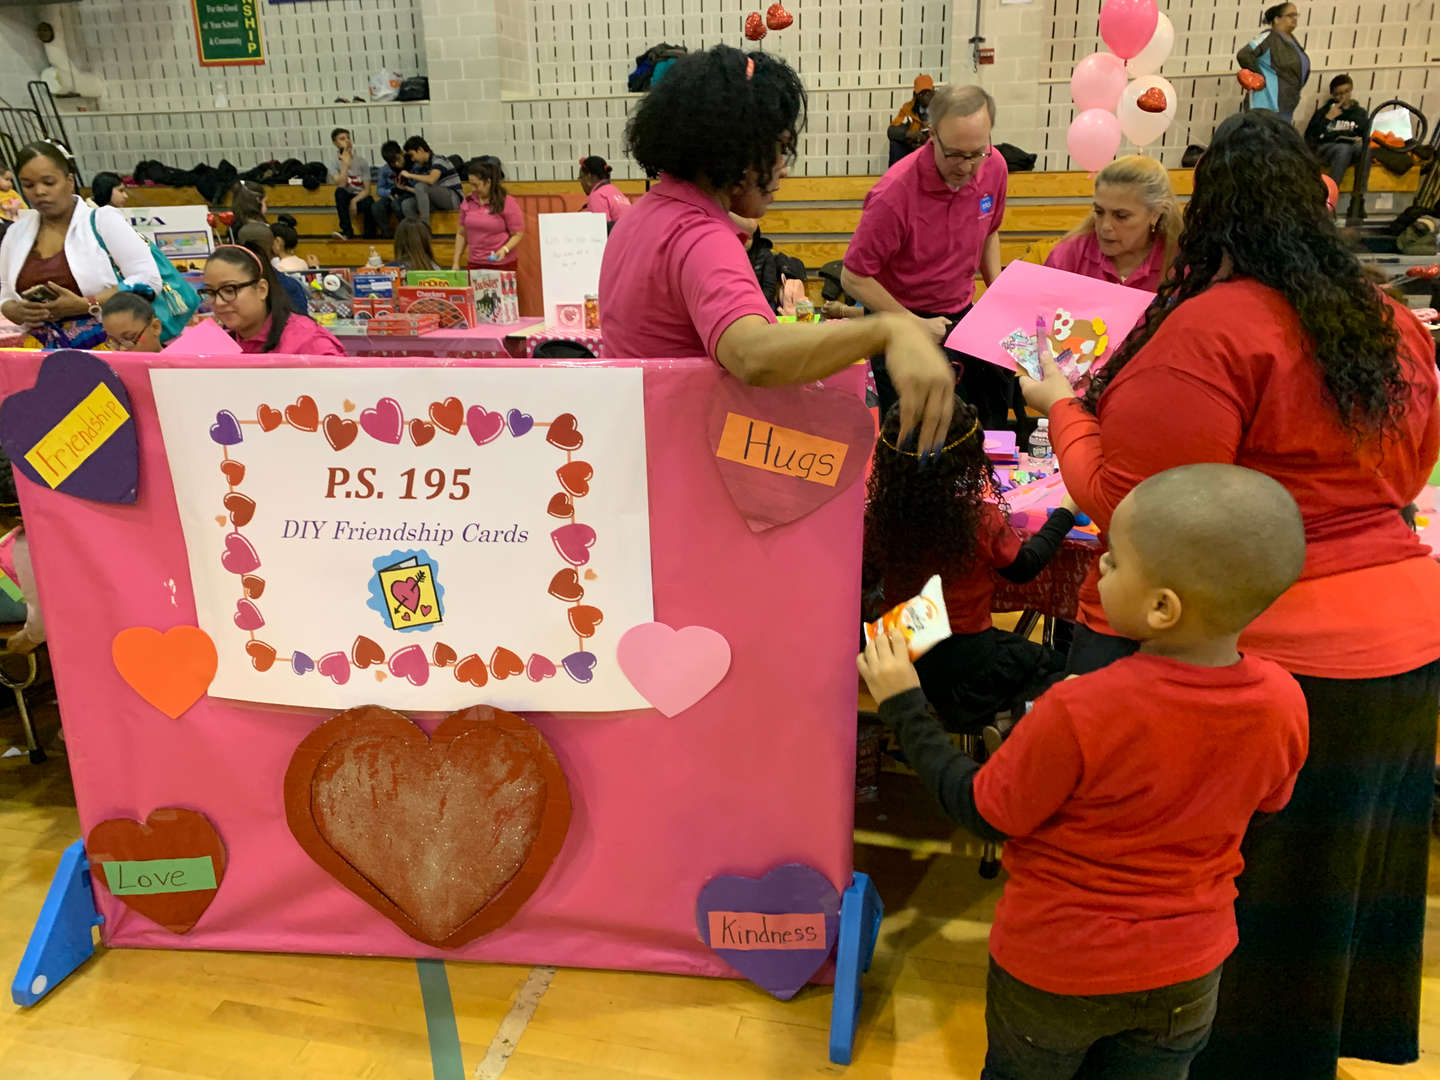 A P.S. 195 booth for making DIY friendship cards